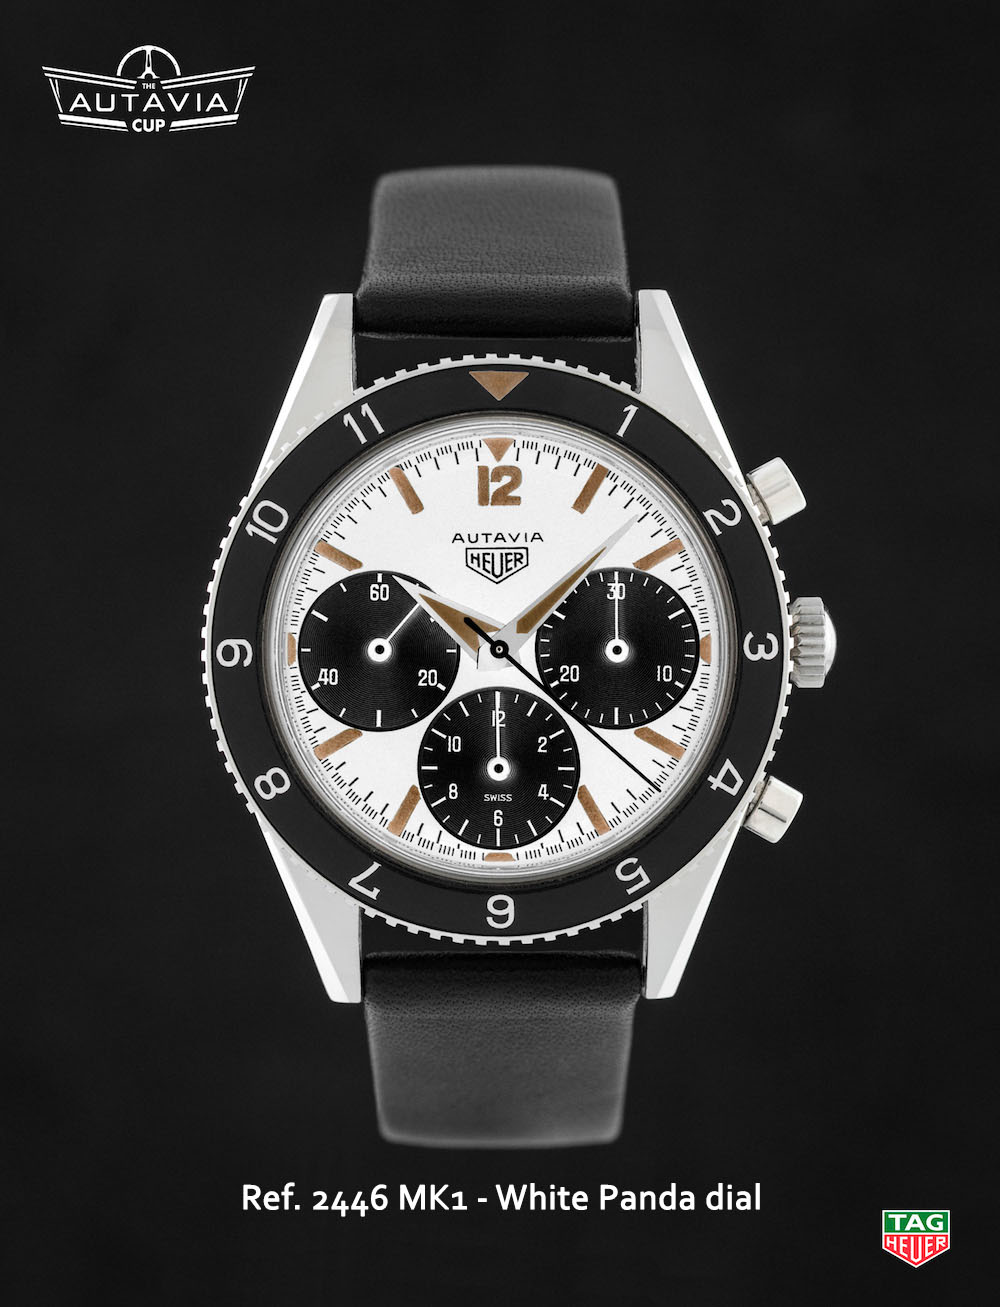 Tag heuer autavia the autavia cup 15 2446 mk1 sn monochrome watches for Tag heuer autavia isograph